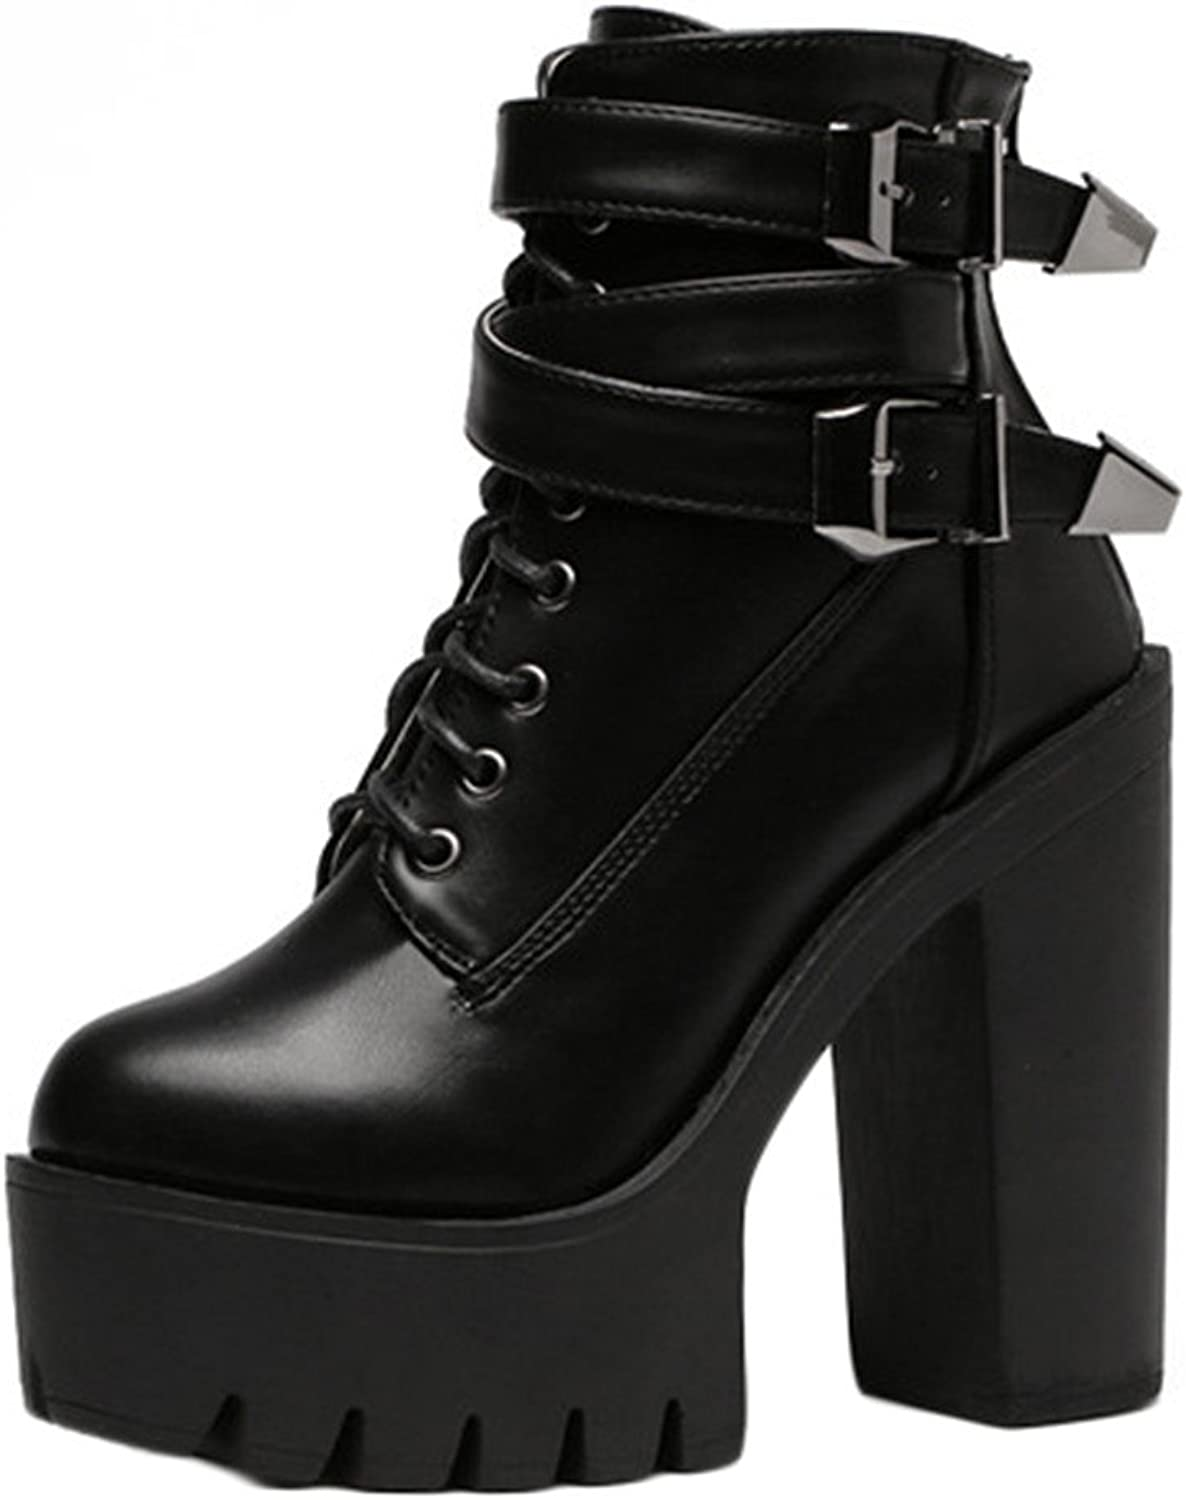 UAaofenG Spring Fashion Women Boots High Heels Platform Buckle Lace Up Leather Short Booties Black Ladies shoes